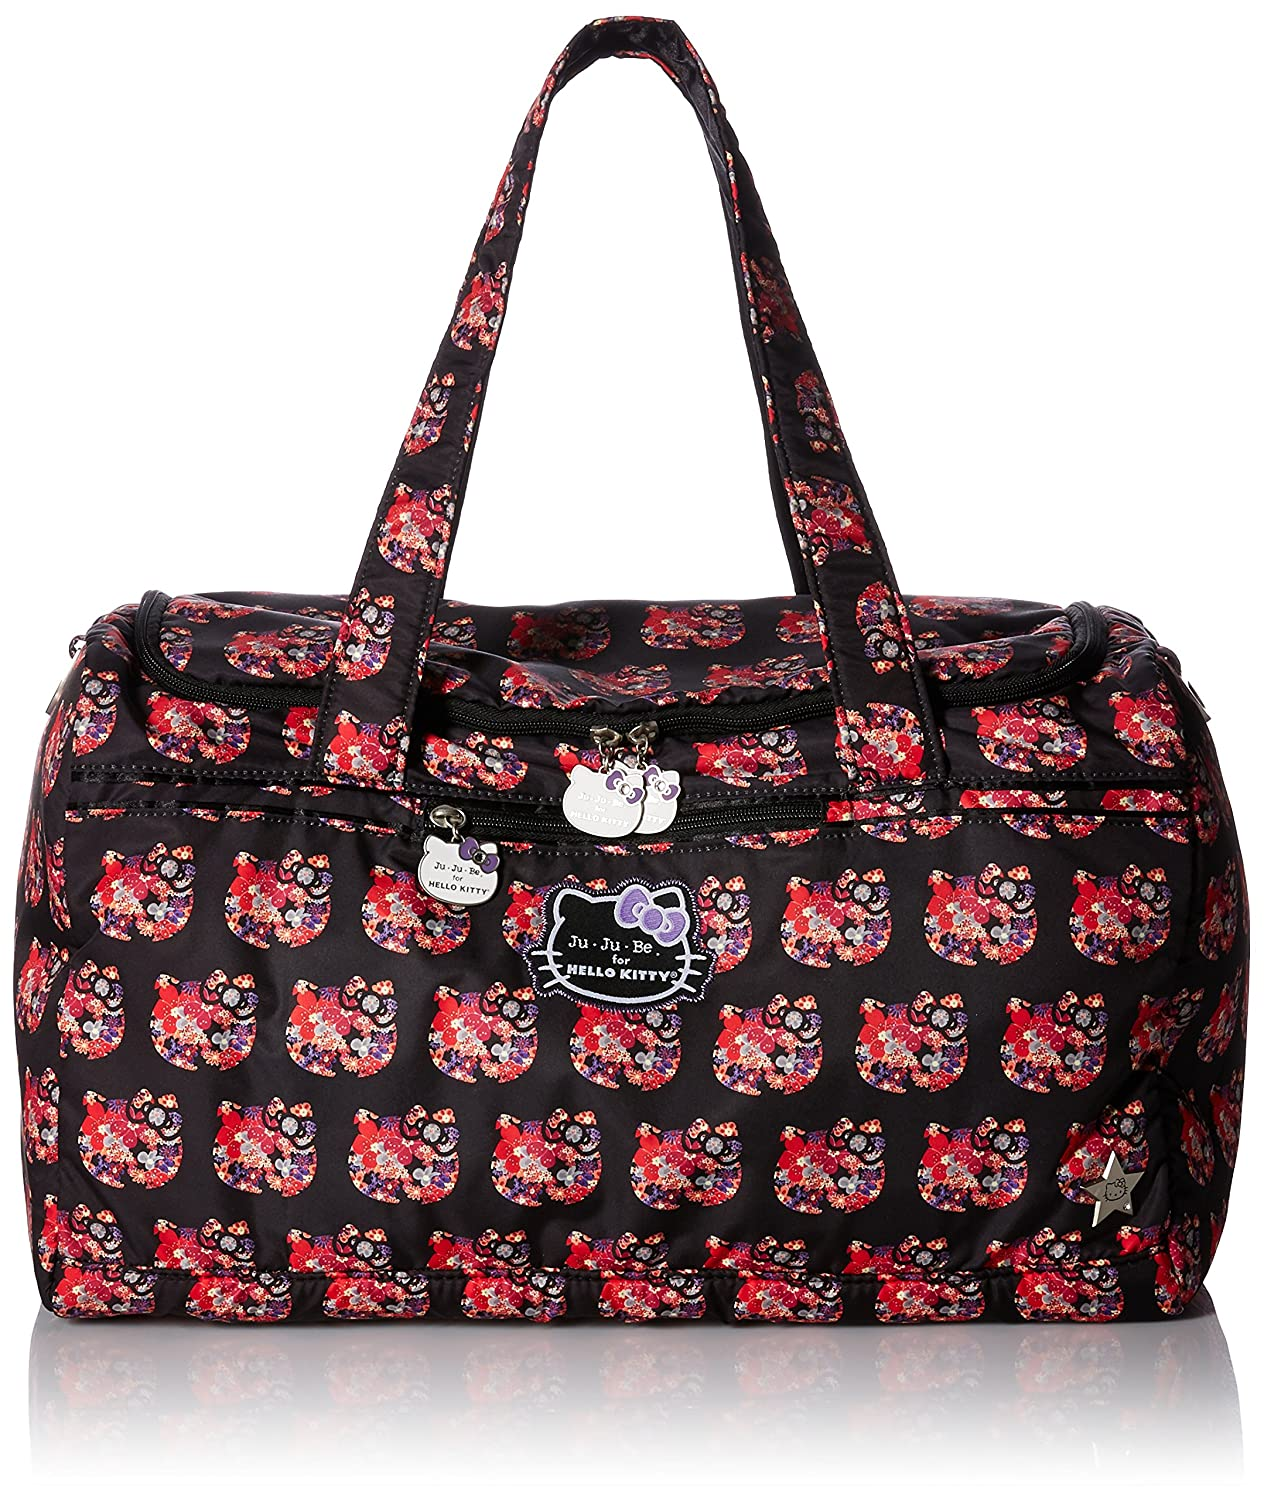 09ea8954971 Amazon.com   JuJuBe Starlet Large Overnight Duffle Bag, Hello Kitty  Collection - Hello Perky   Baby